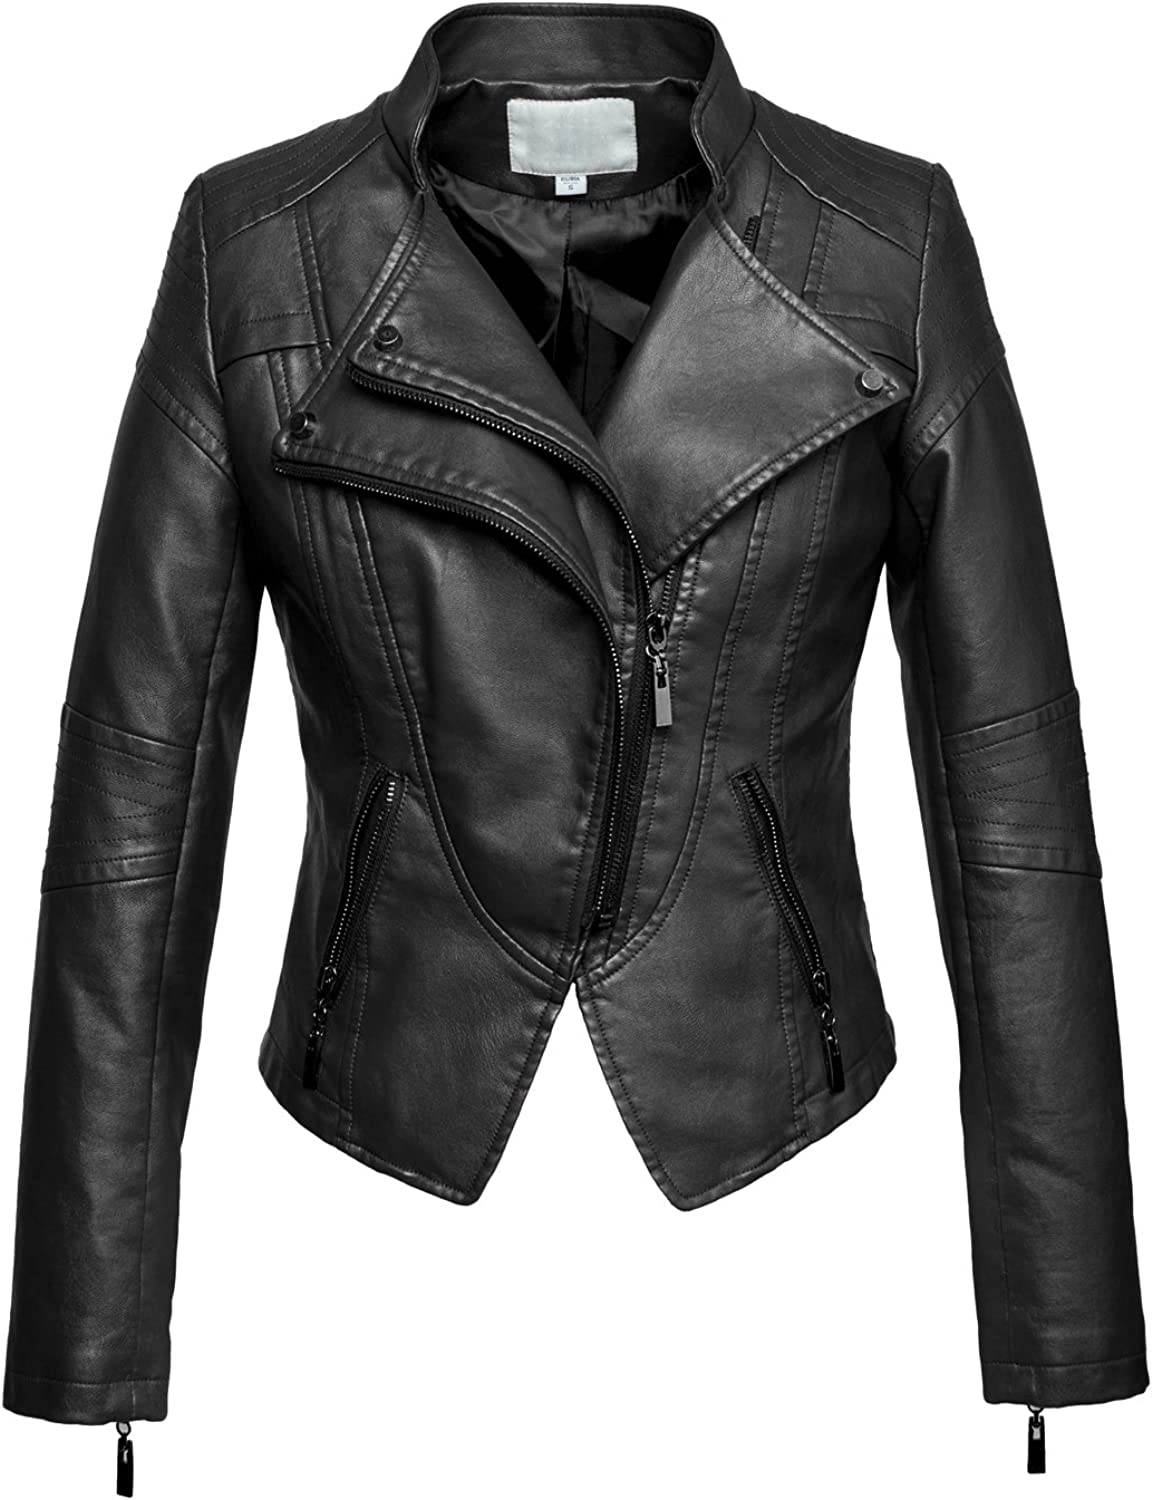 Chouyatou Women's Fashion Tailored ZipUp Faux Leather Quilted Racer Jacket